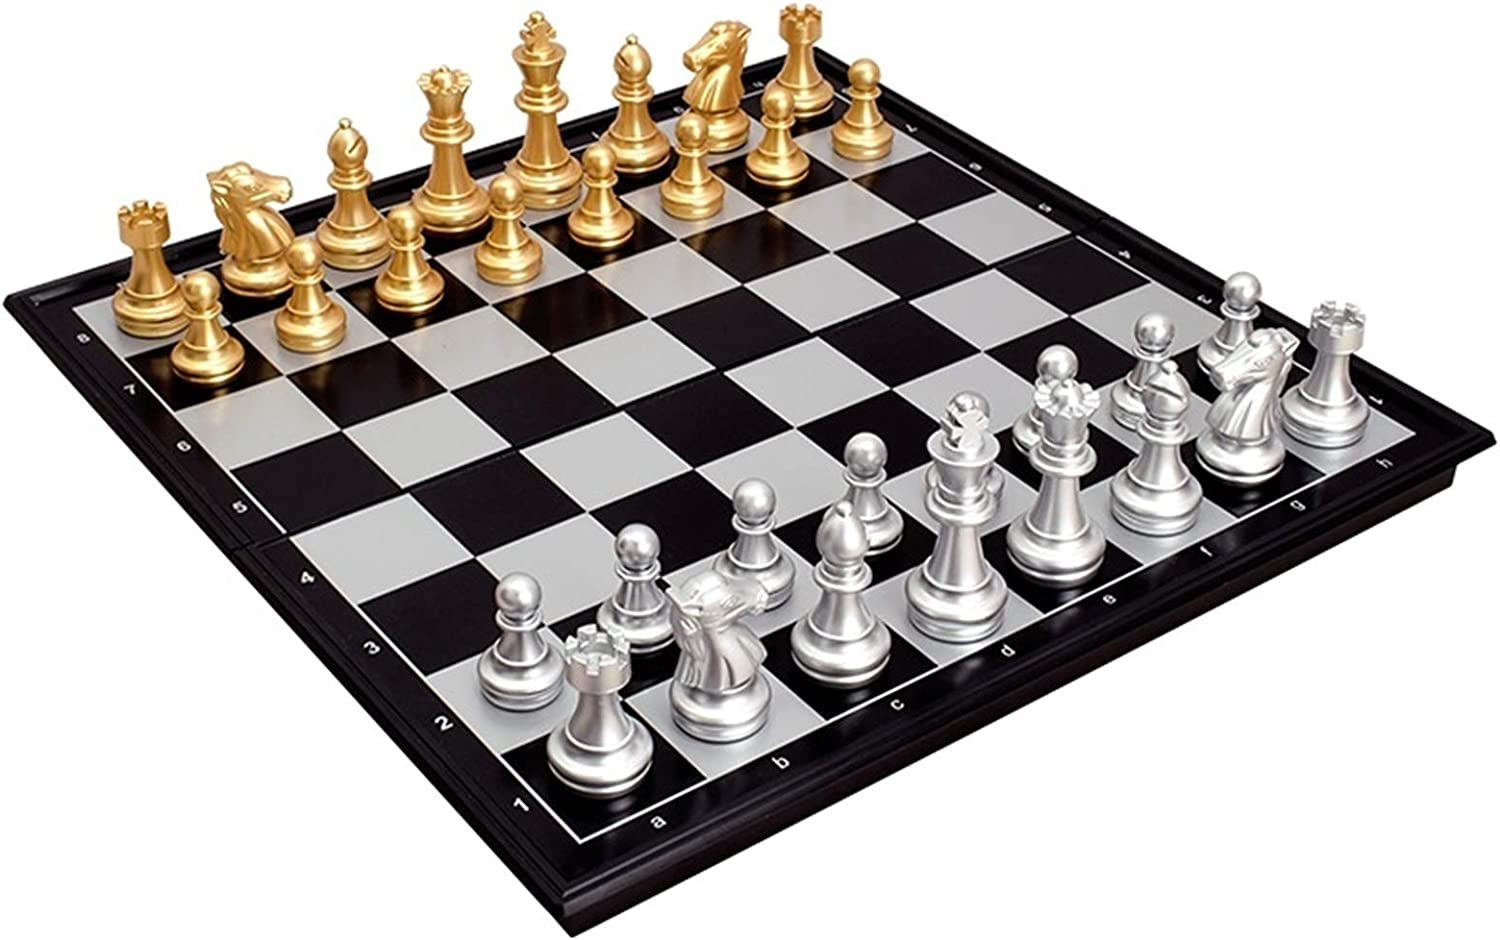 LILINGJIA Chess Magnetic Ranking TOP8 New item Child high-end Beginners Sp Competition